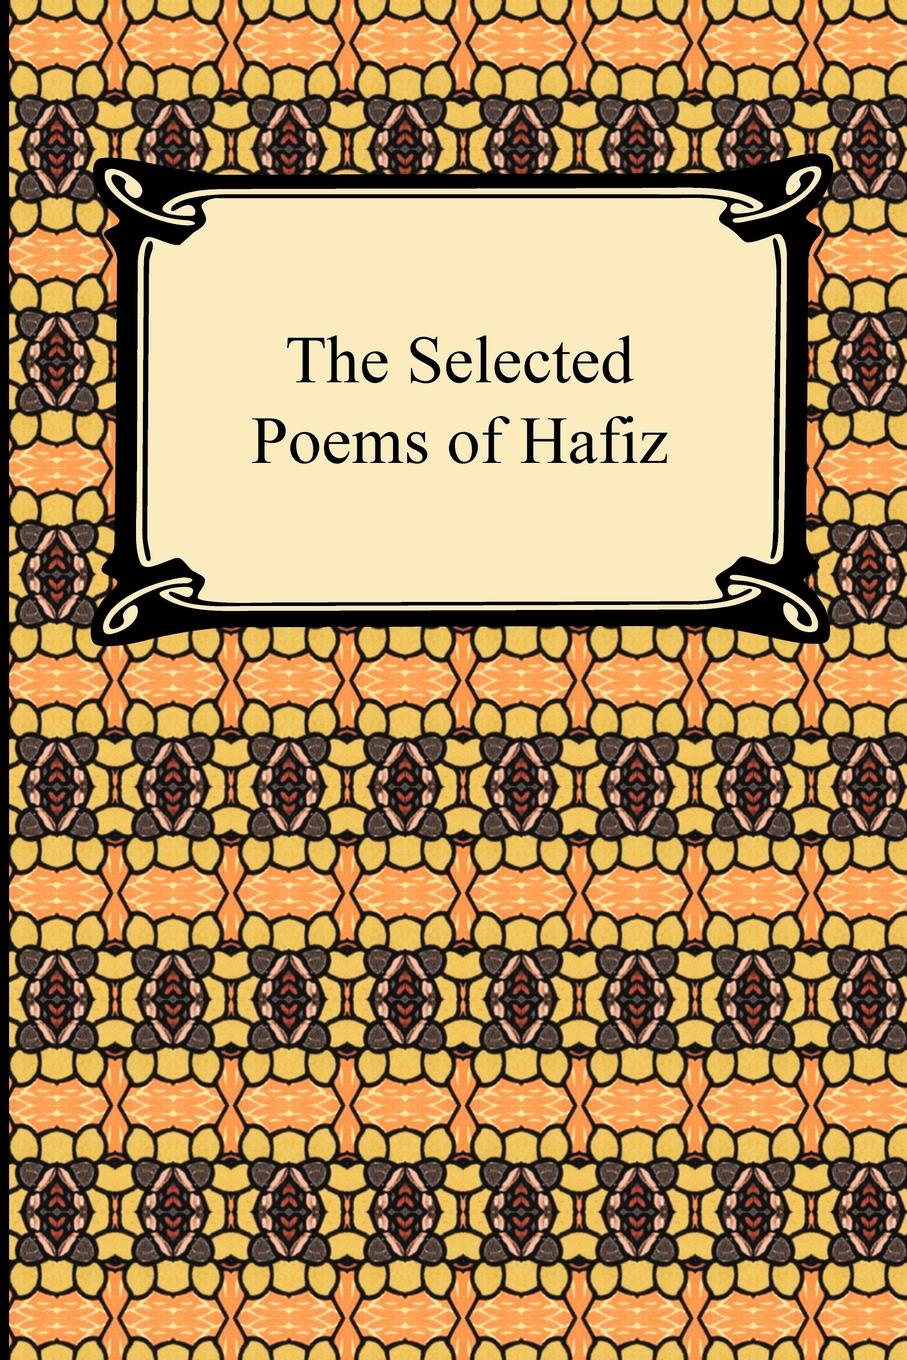 Hafiz, Gertrude Lowthian Bell The Selected Poems of Hafiz matthew e nordin musings of the northern poet poems of love and faith